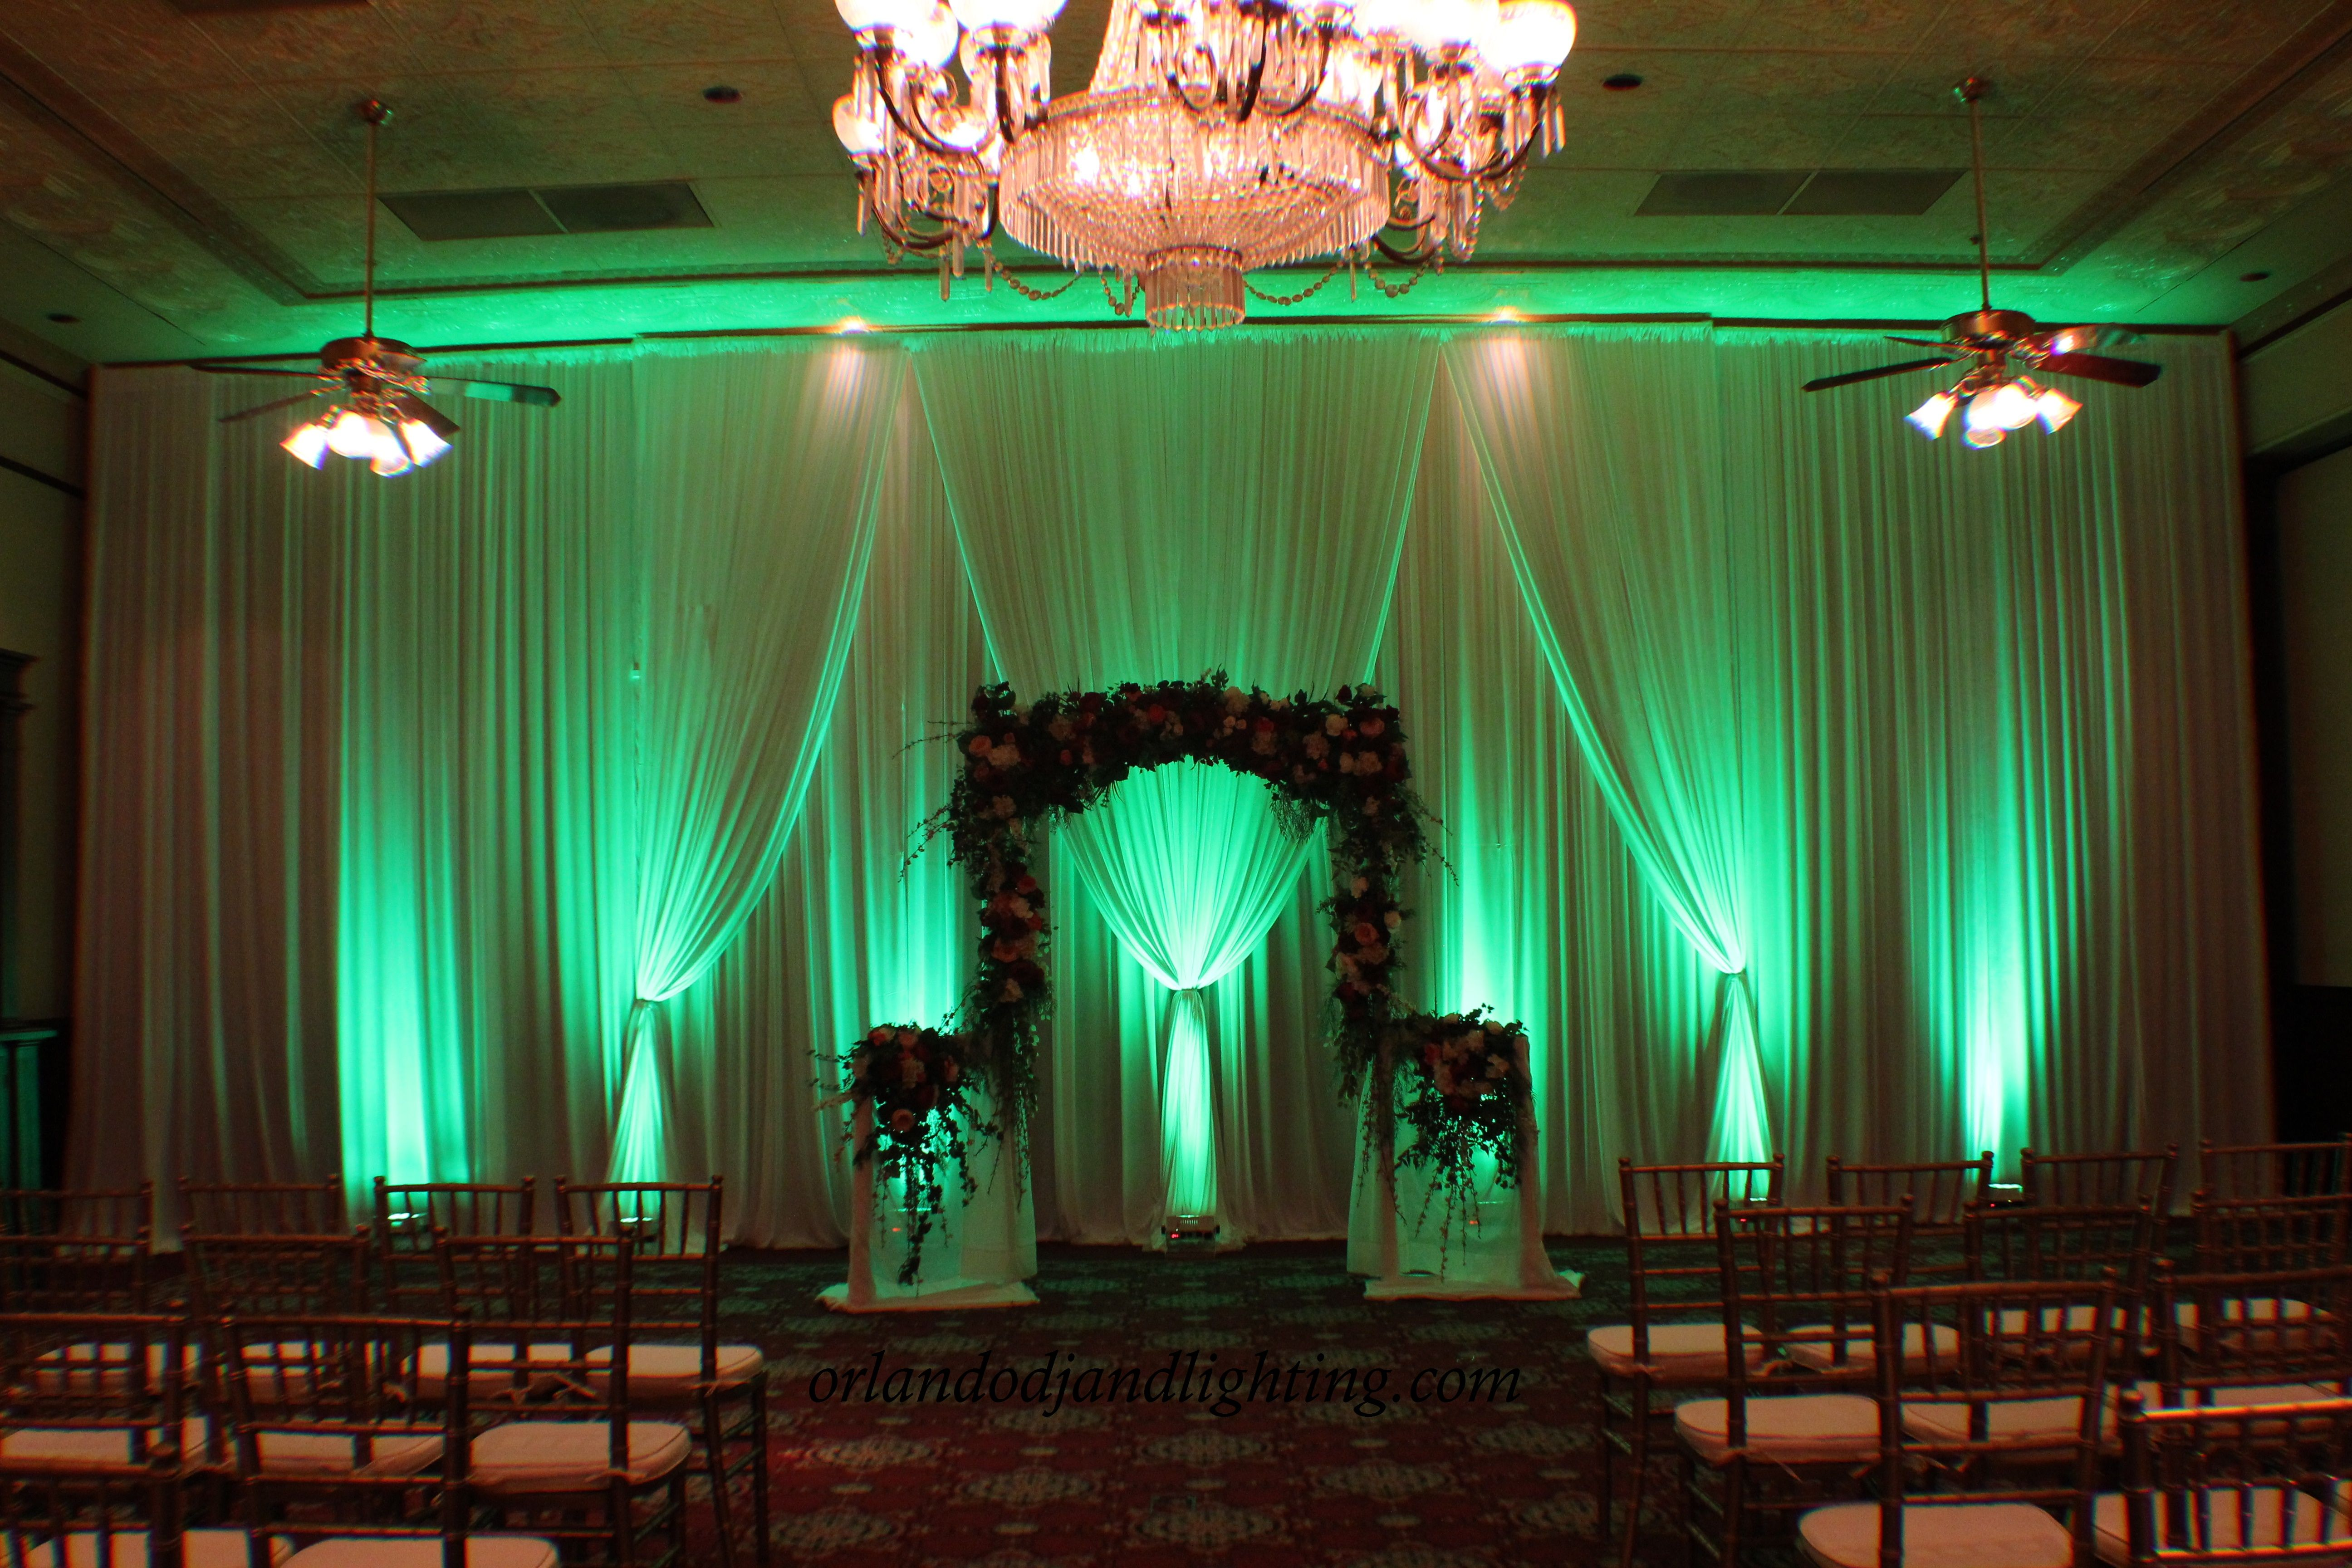 Columns ivory fabric uplighting wedding ceremony downtown double tree - Stunning Ceremony Backdrop Draping Accented With Mint Green Uplighting Constructed By Orlandodjandlighting Com At